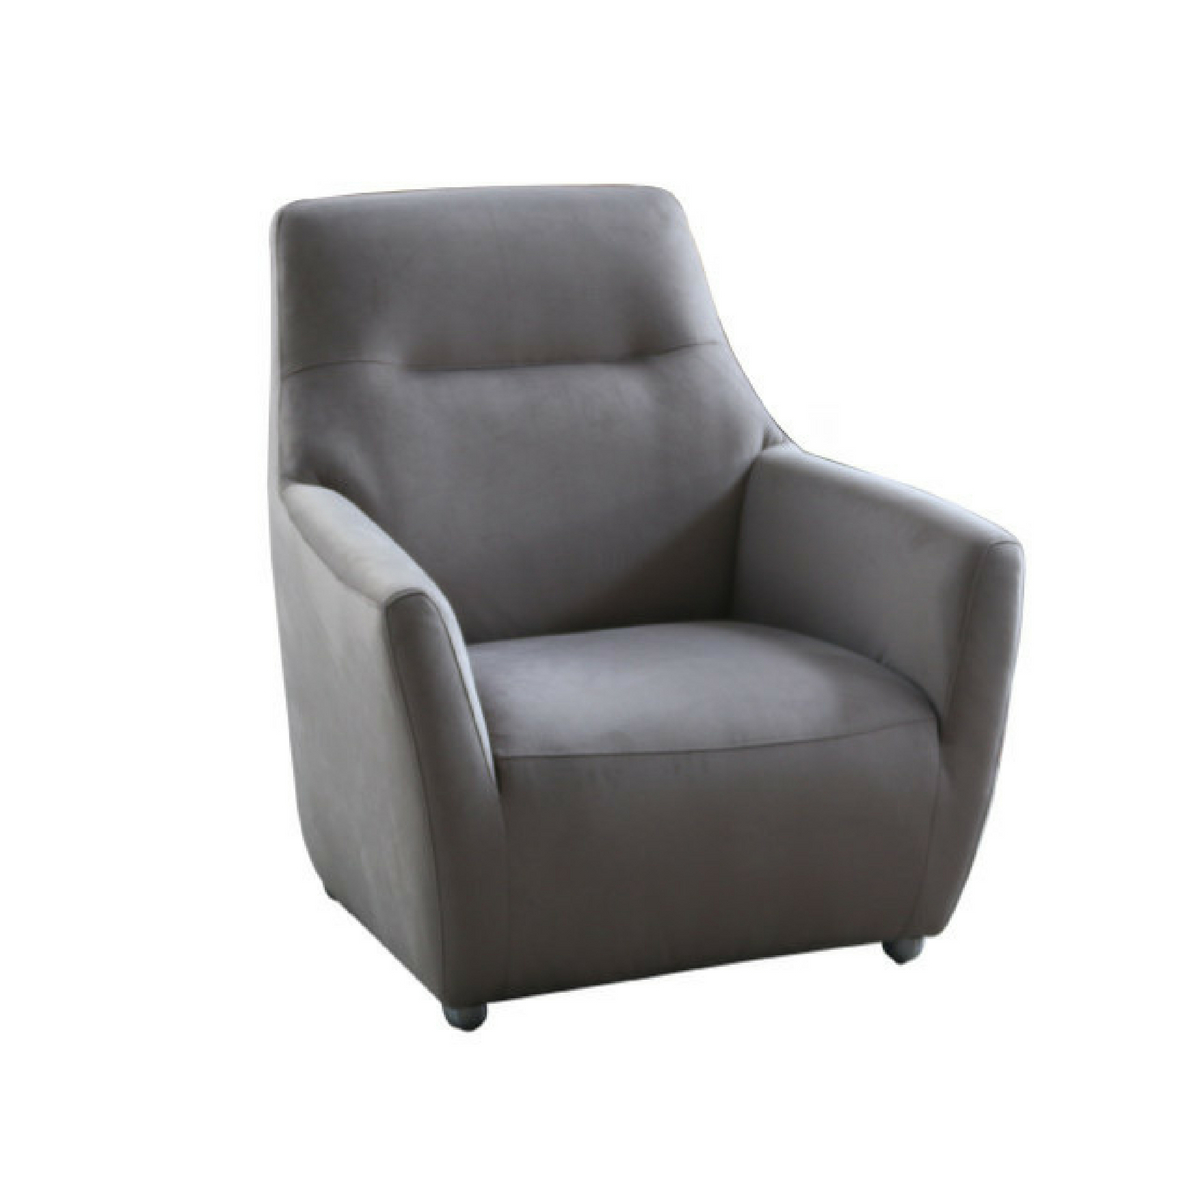 Widely Used Manor Grey Swivel Chairs With Regard To Maldives Swivel Chair – Corcorans Furniture & Carpets (View 20 of 20)